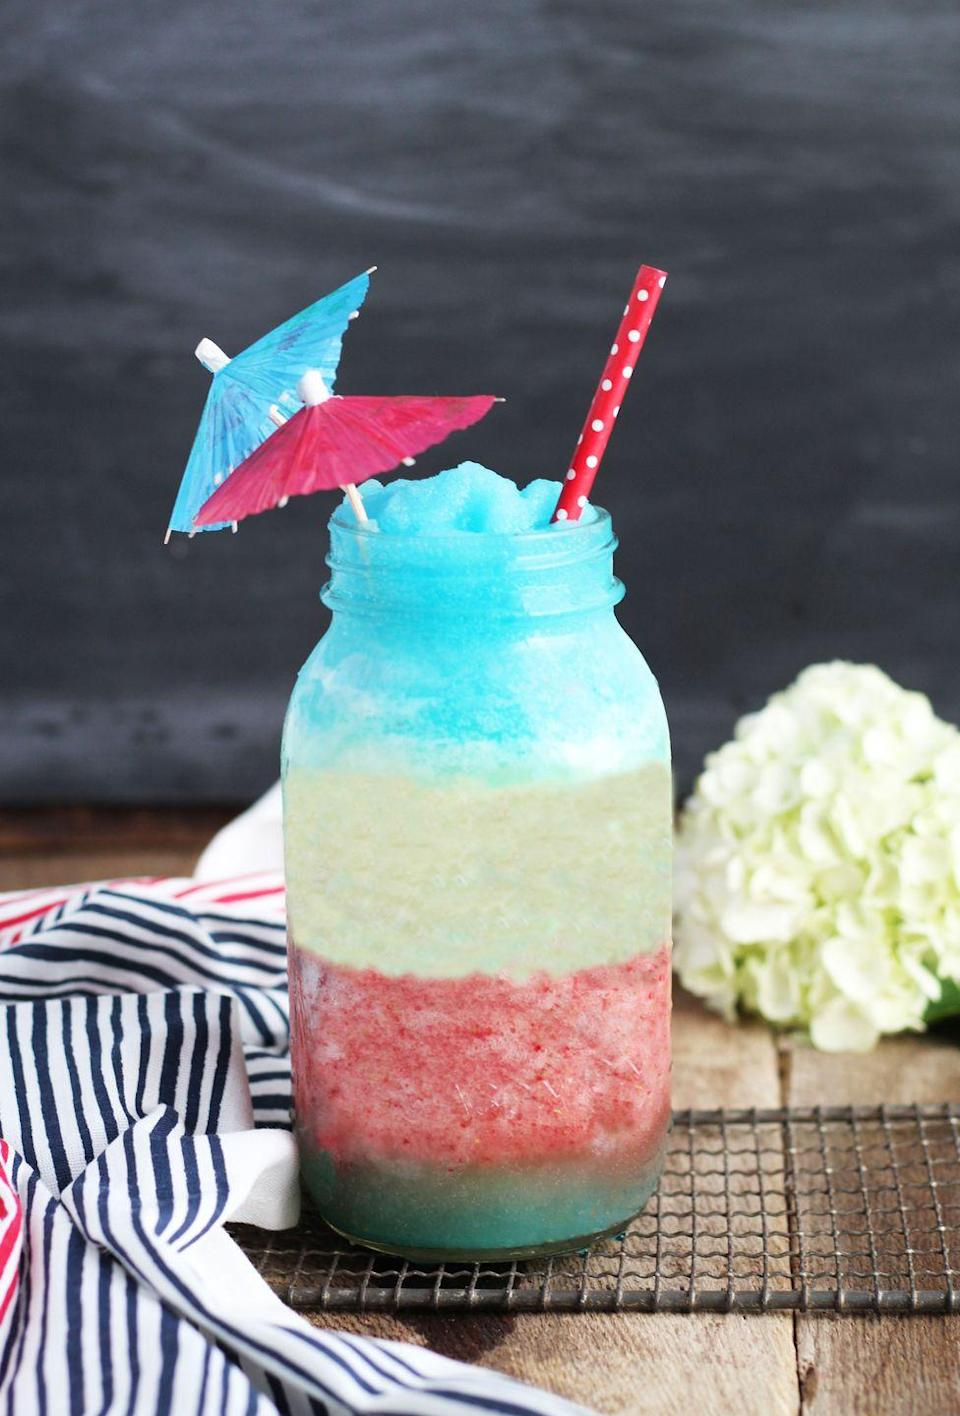 """<p>We're spiking the summer staple with frozen berries and Blue Curacao. Have one-too-many and you may just see stars. <em><br></em></p><p><a href=""""http://www.3yummytummies.com/red-white-blue-pina-colada/"""" rel=""""nofollow noopener"""" target=""""_blank"""" data-ylk=""""slk:Get the recipe from 3 Yummy Tummies »"""" class=""""link rapid-noclick-resp""""><em>Get the recipe from 3 Yummy Tummies »</em></a></p>"""